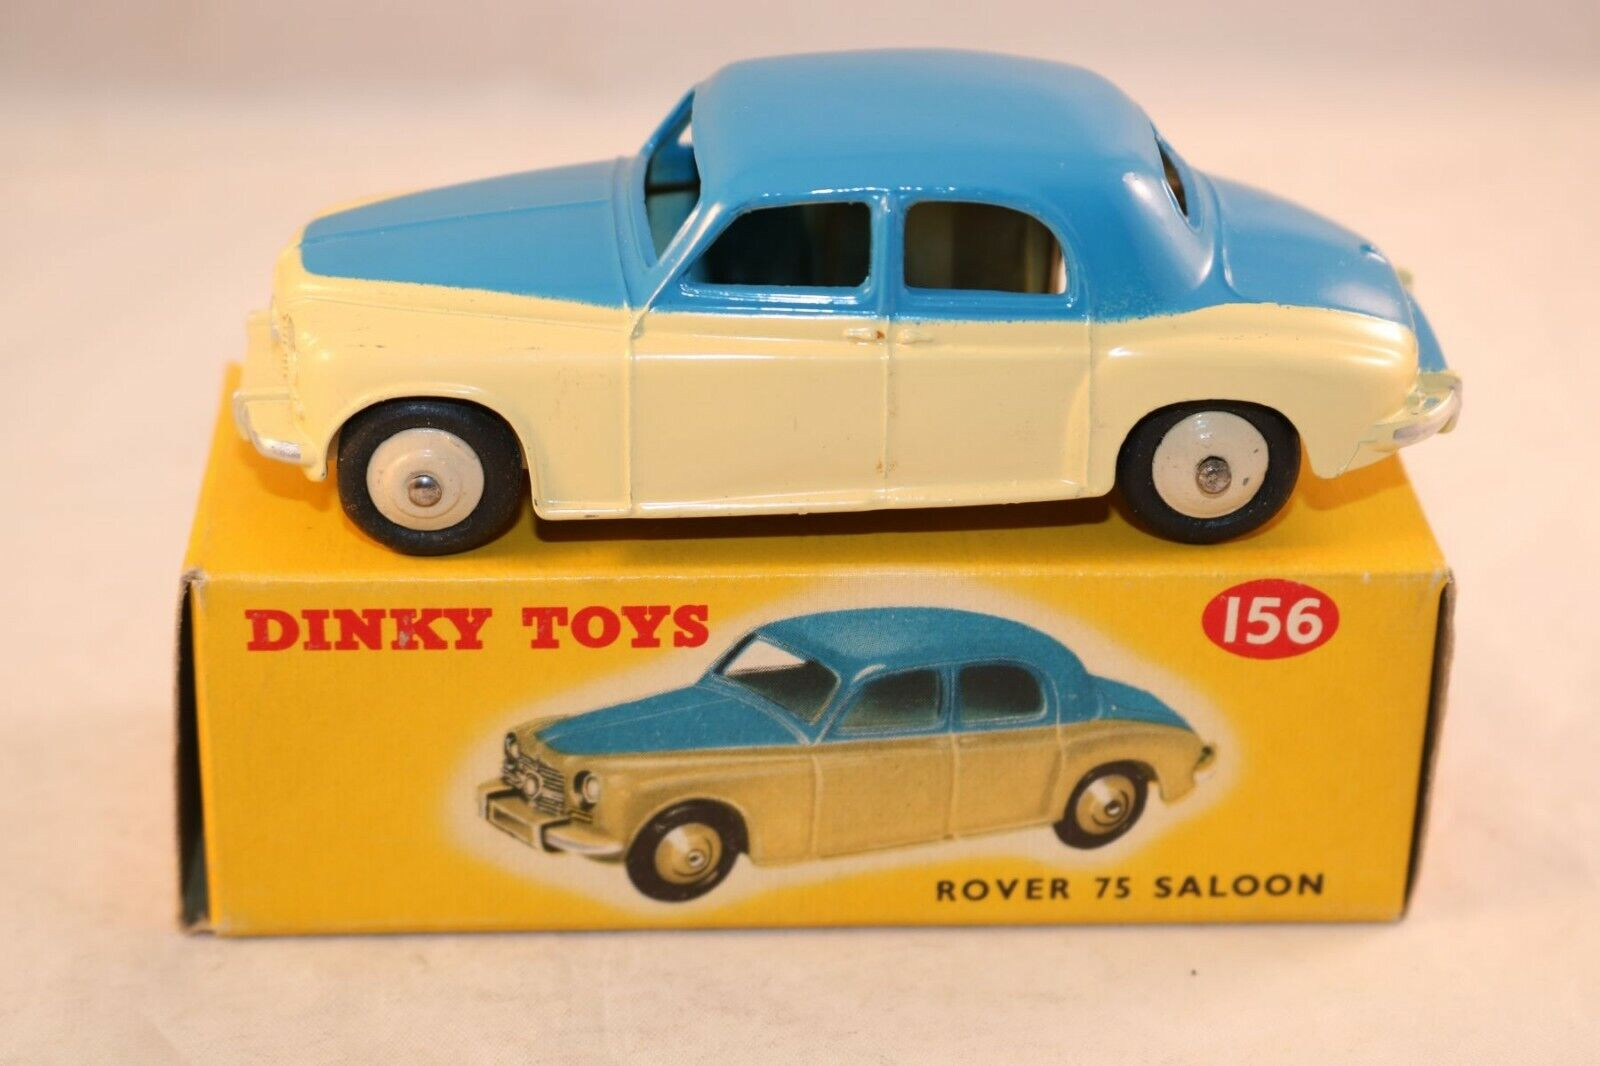 Dinky Toys 156 Rover 75 saloon 2 tone blu and cream mint in n.mint box SUPERB